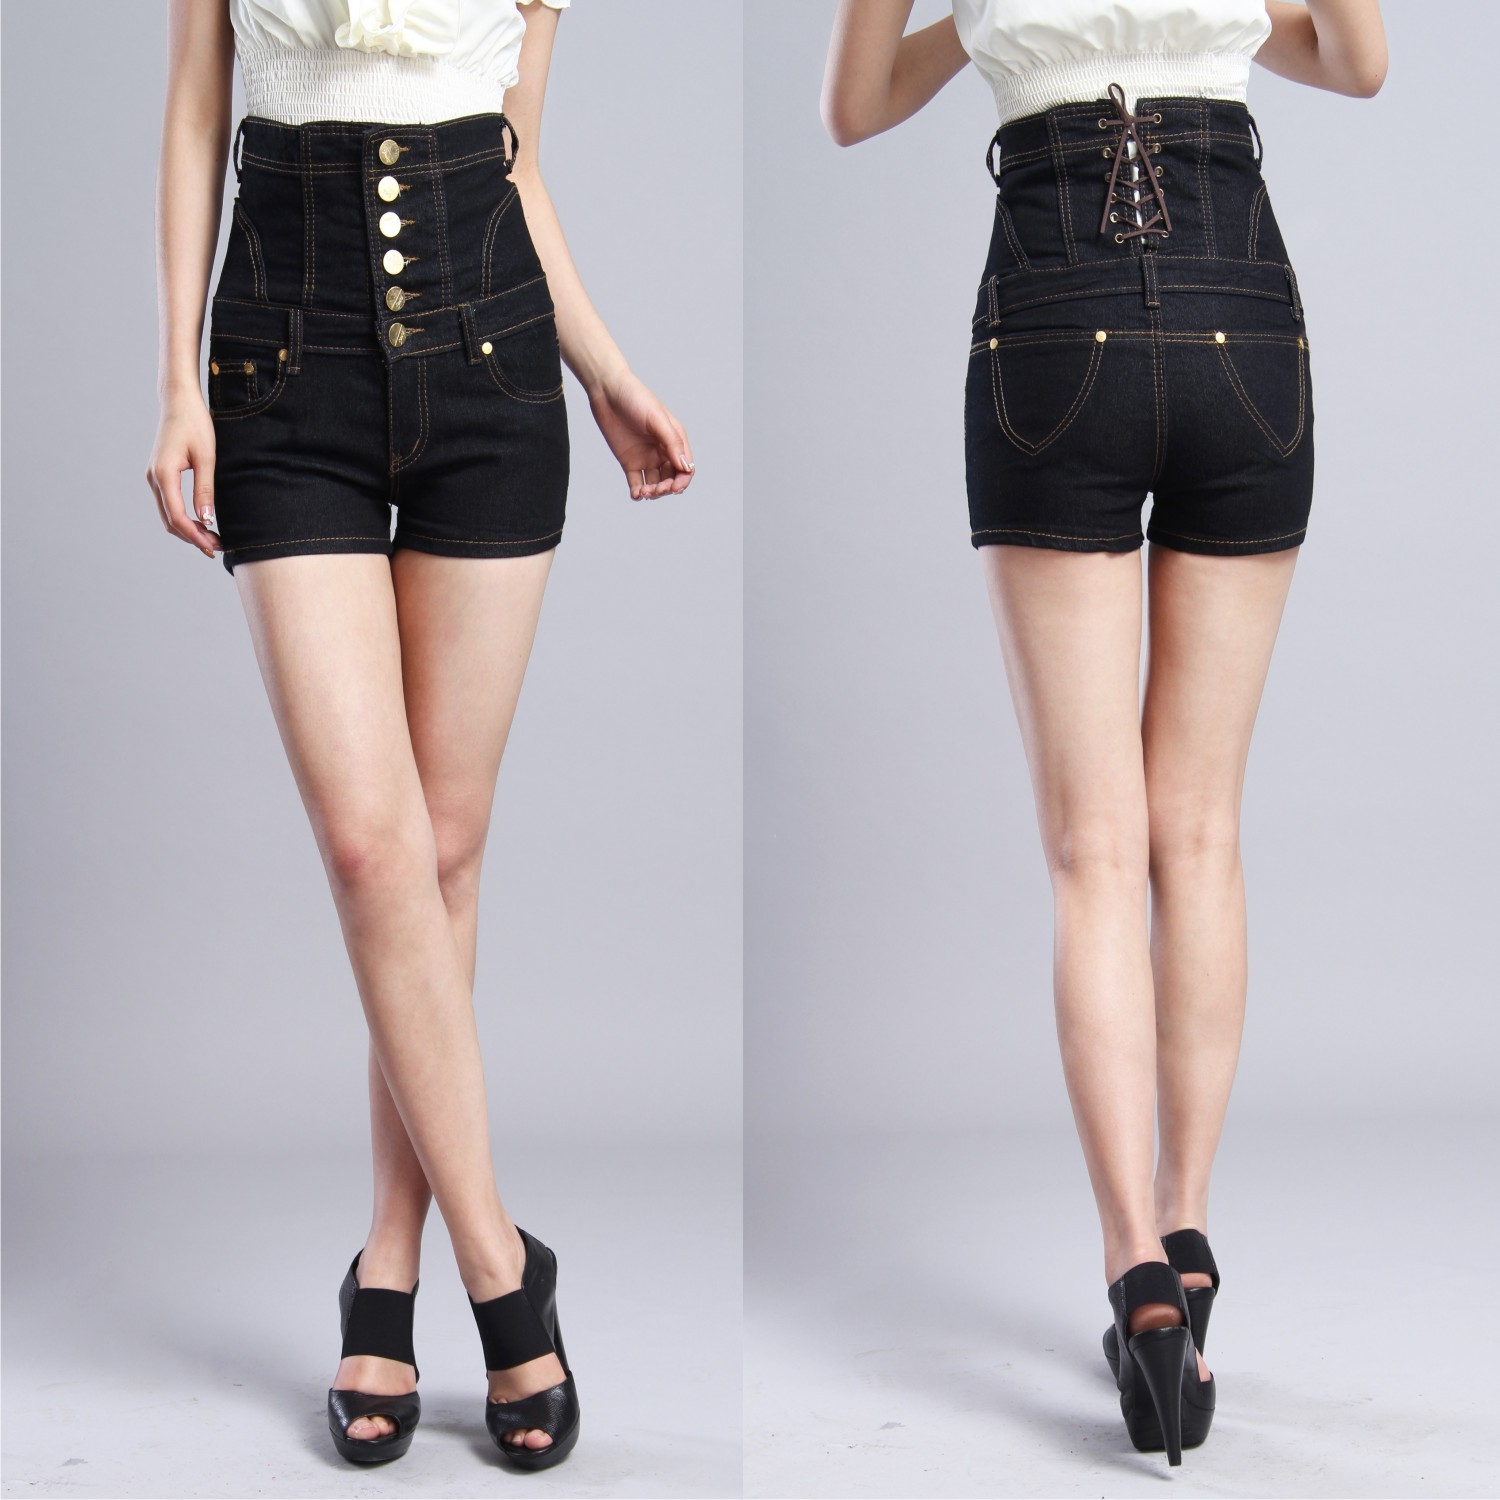 com : Buy 2013 women's spring plus size high waist denim shorts ...